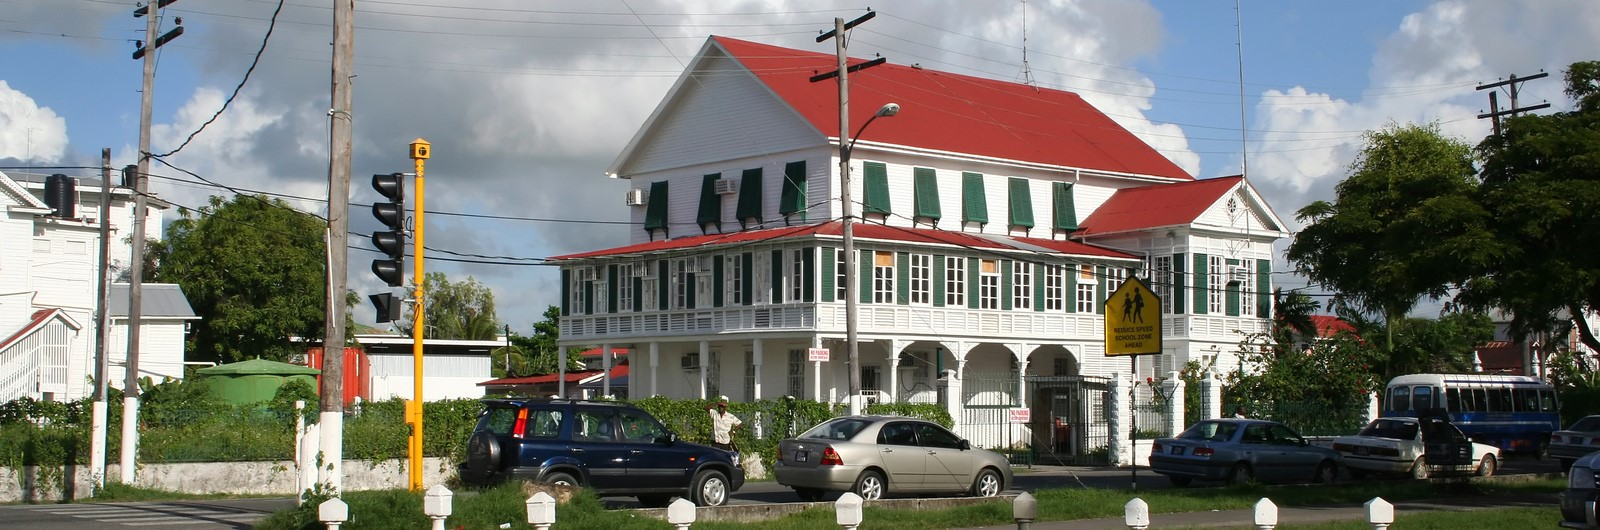 city header guyana town